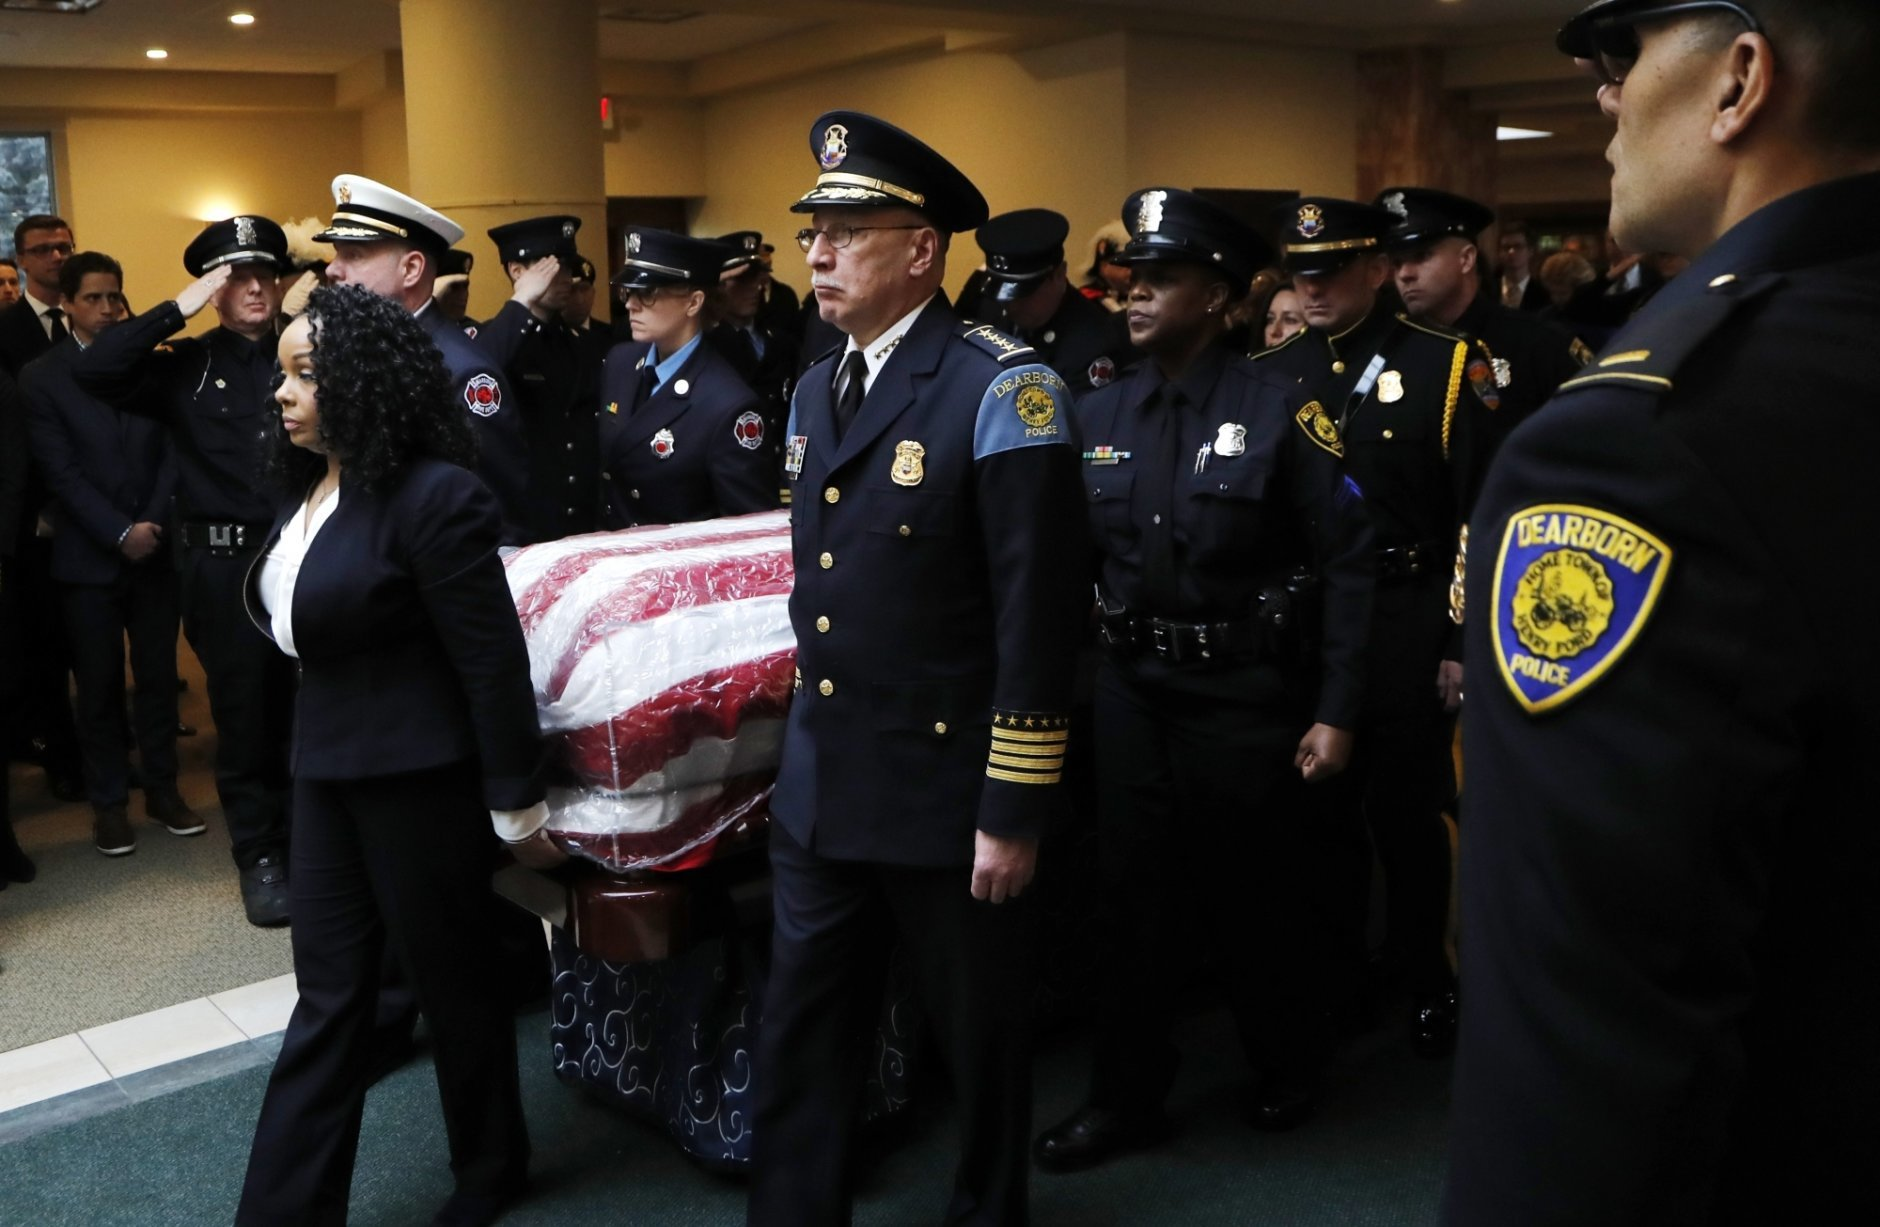 Dearborn, Mich., police and firefighter pallbearers carry the casket of former Rep. John Dingell, D-Mich. at the Church of the Divine Child, Tuesday, Feb. 12, 2019, in Dearborn, Mich. Dingell, the longest-serving member of Congress in American history, was first elected in 1955 and retired in 2014. (AP Photo/Carlos Osorio)